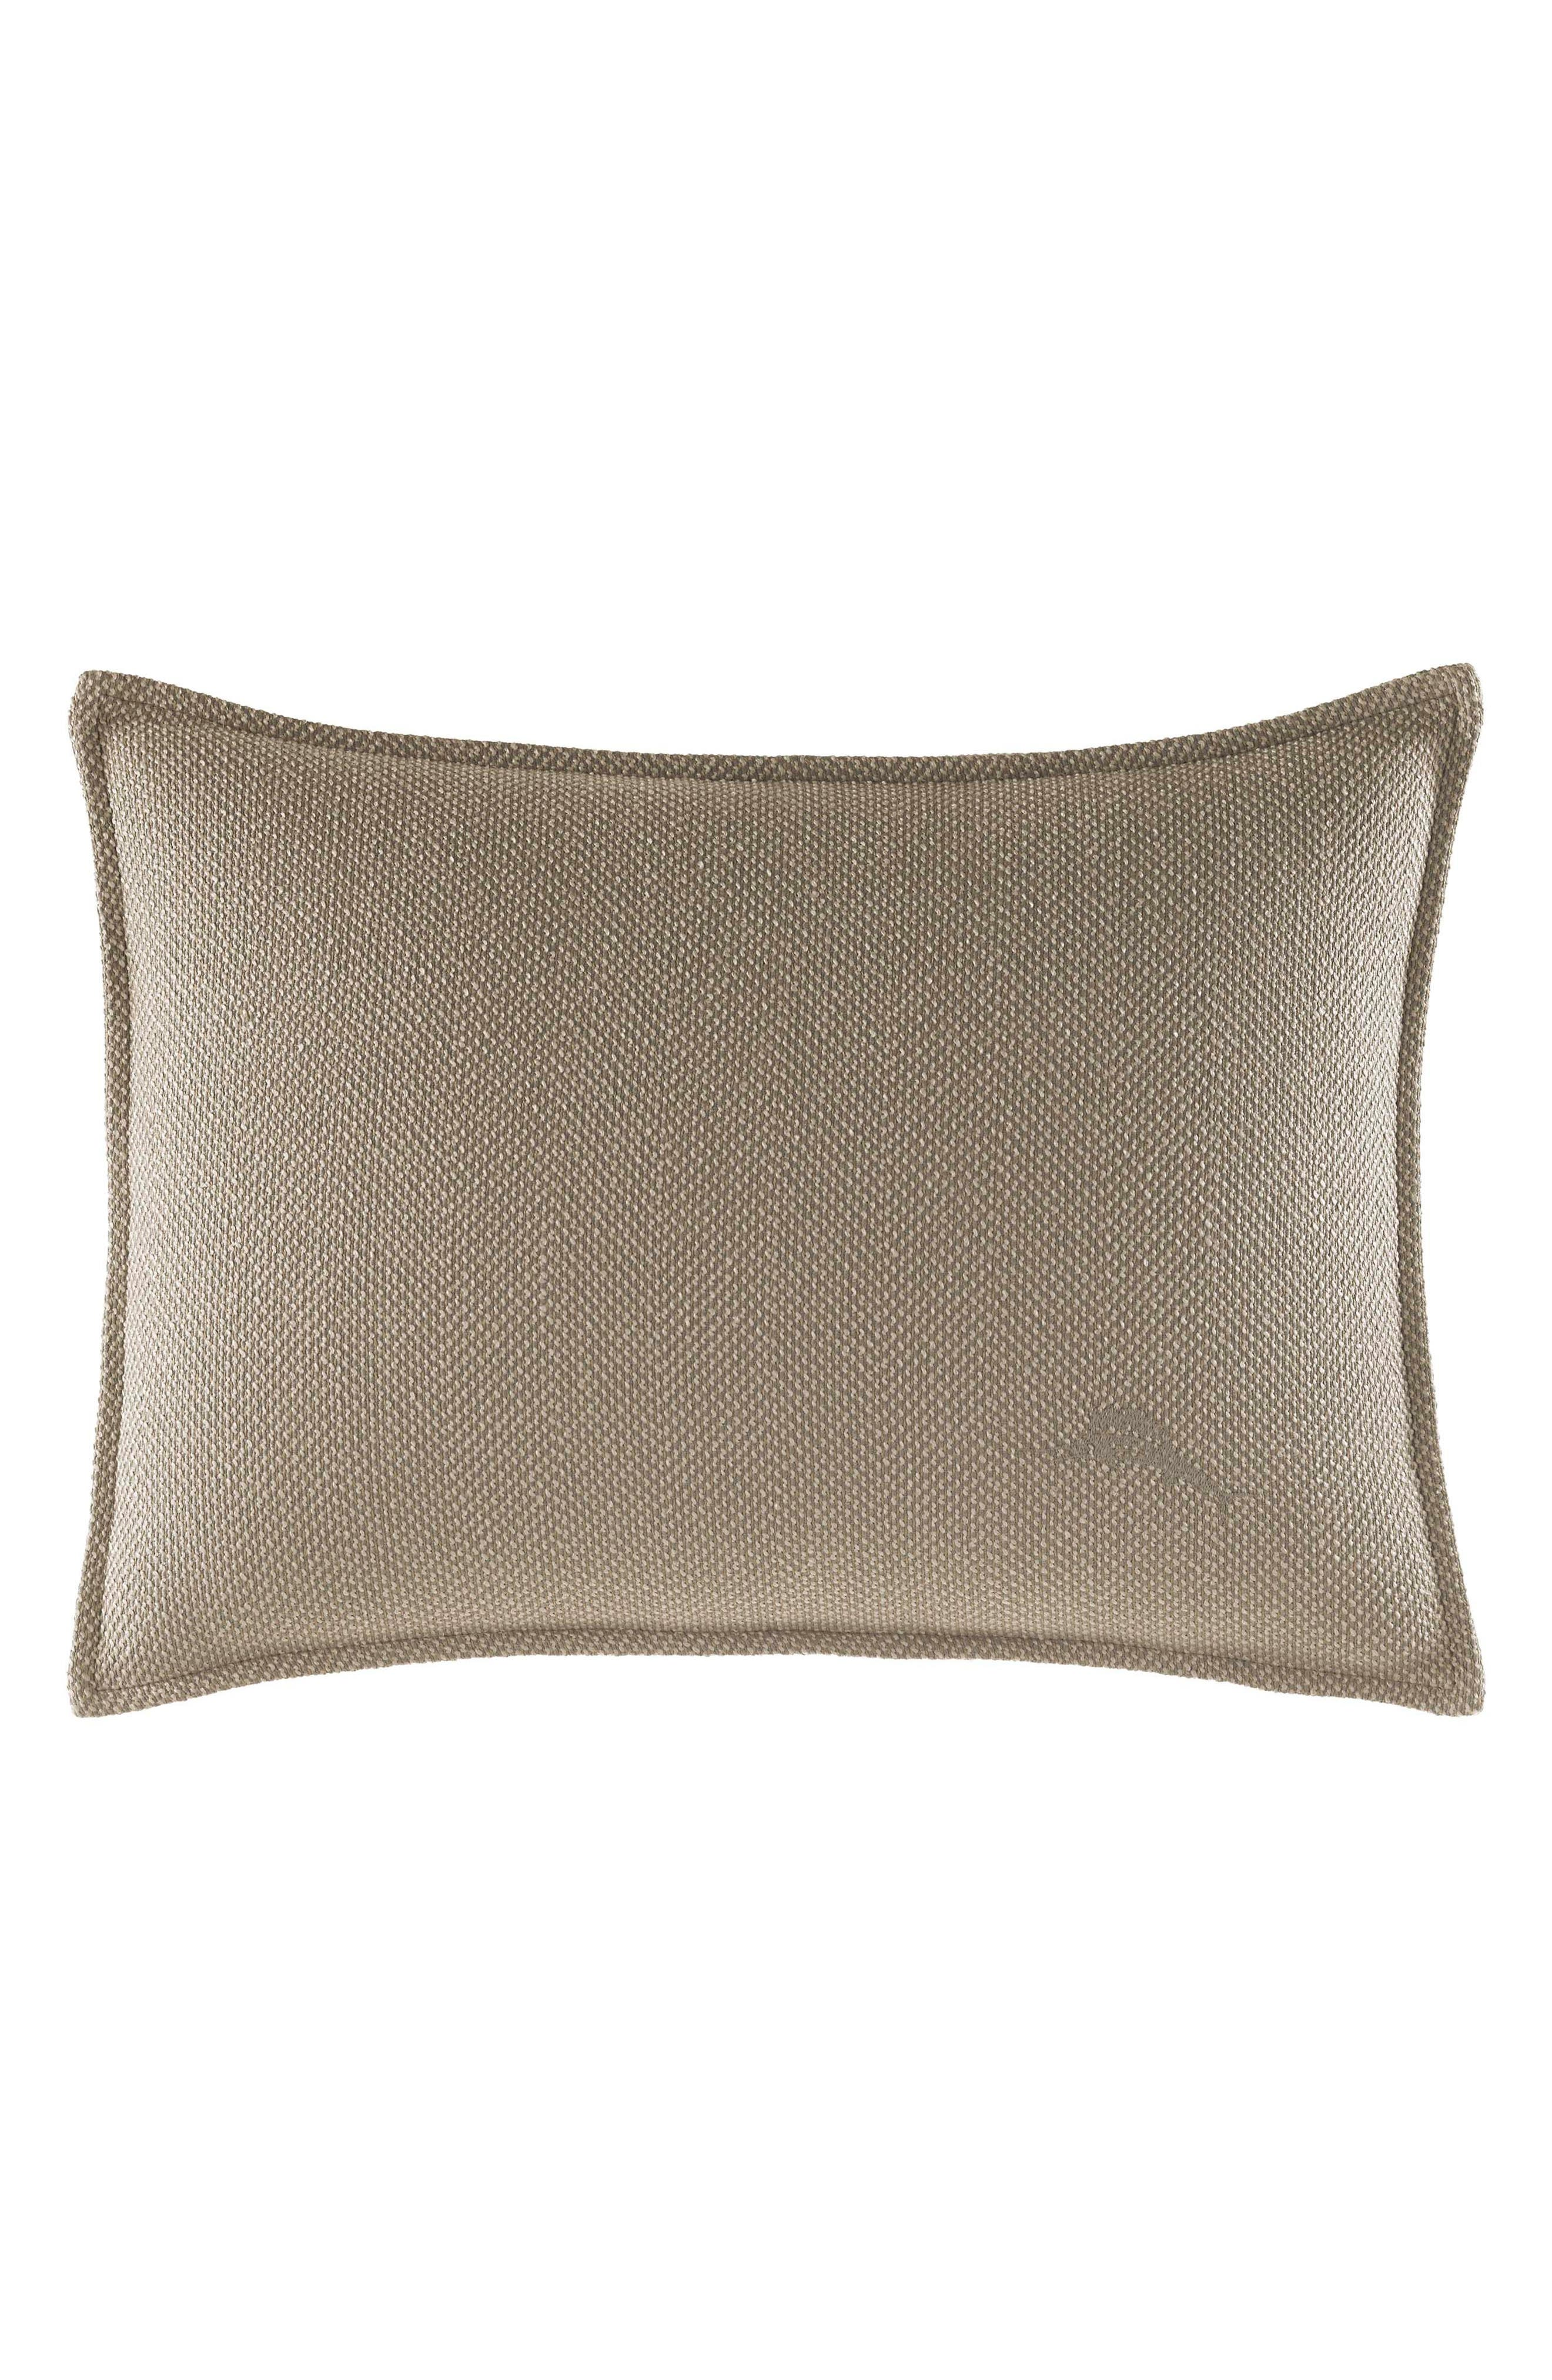 Raffia Palms Pillow,                         Main,                         color, 020